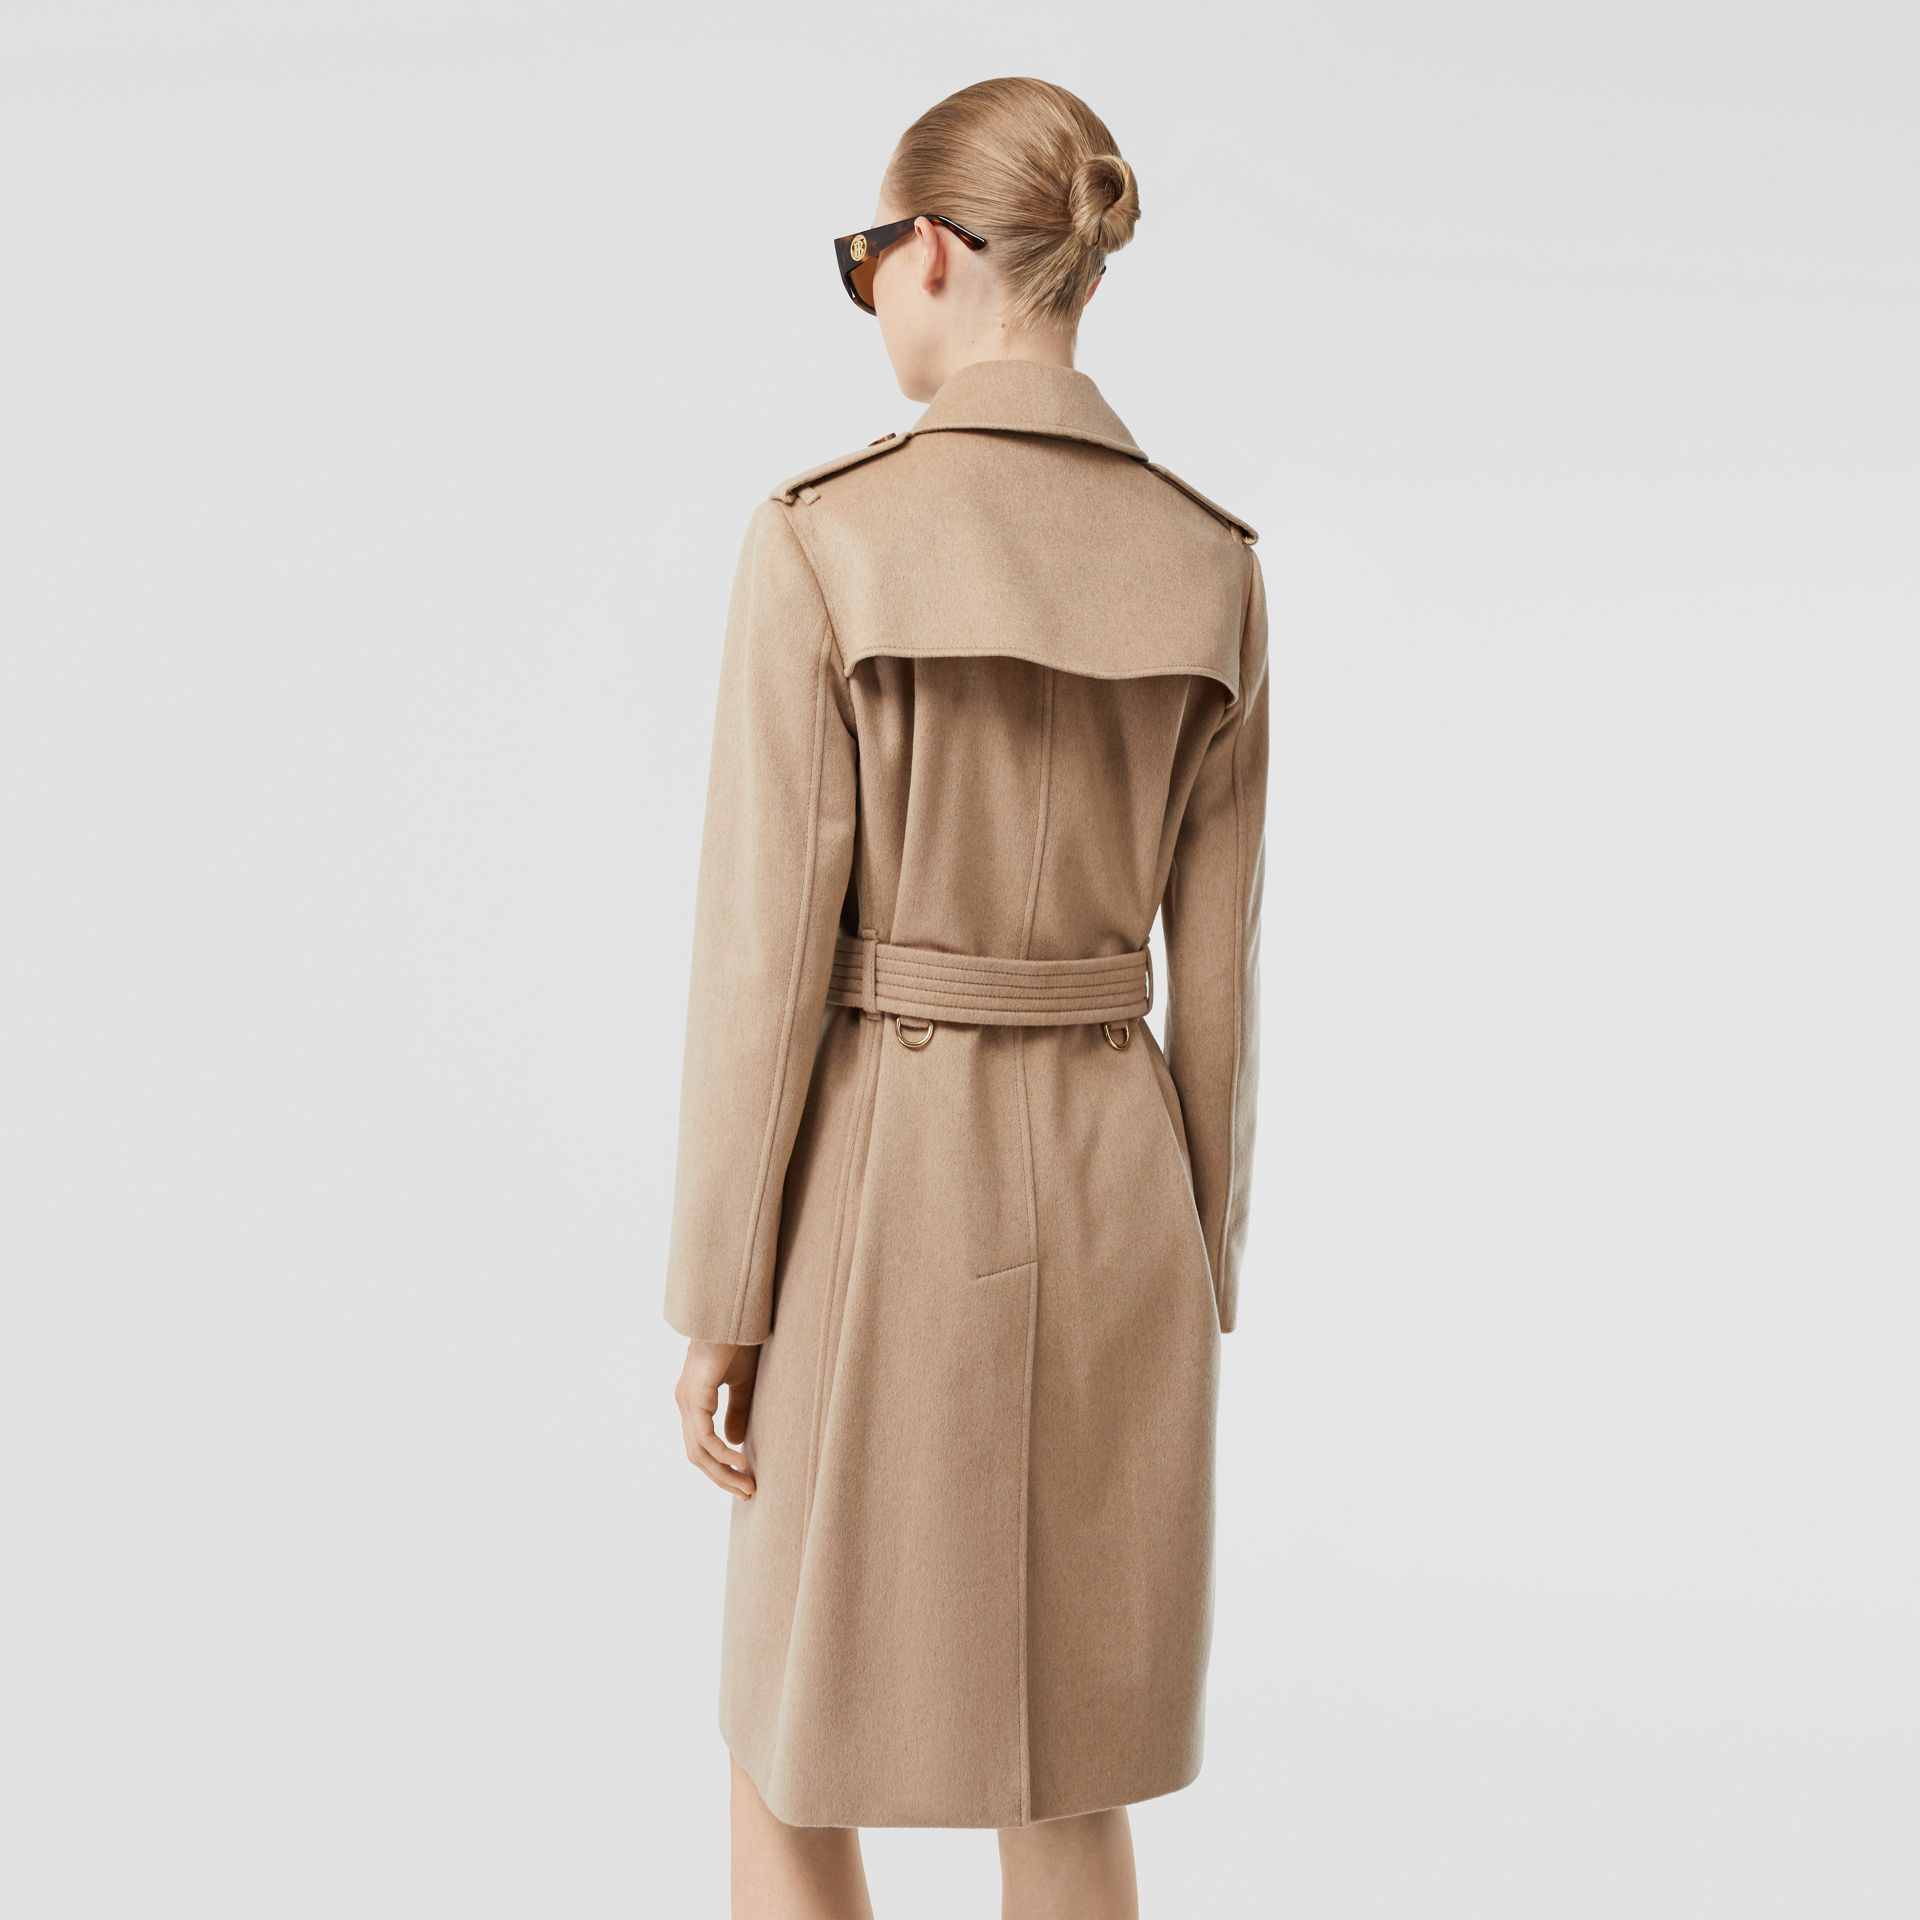 Cashmere Trench Coat in Camel - Women | Burberry United Kingdom - gallery image 2